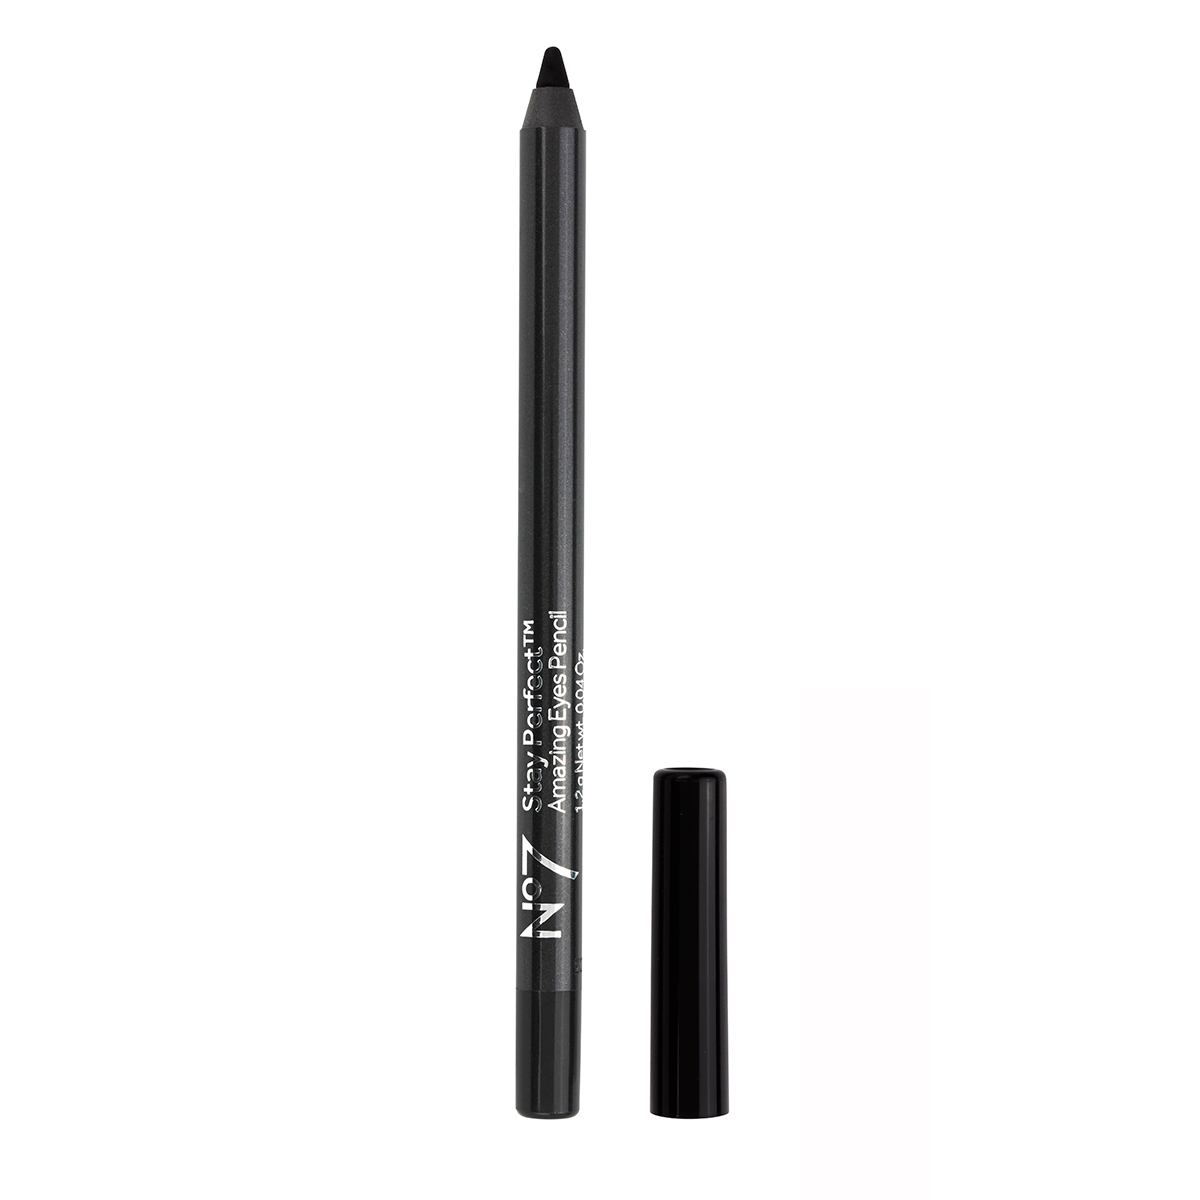 THICKER FULLER NATURAL LASHES - The Grown Up Edit           .jpg